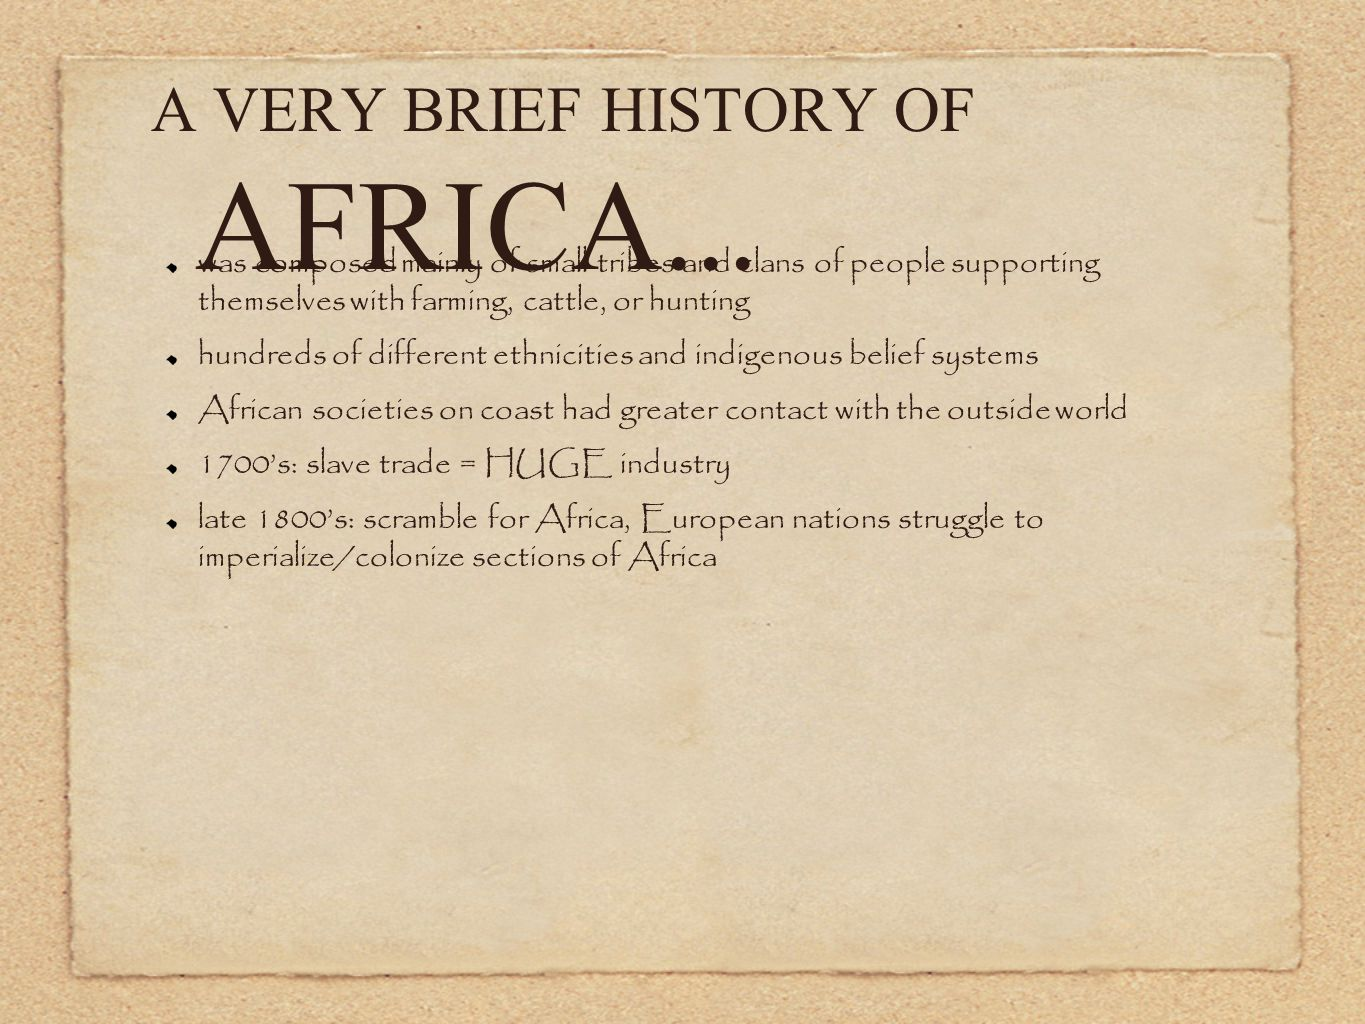 A VERY BRIEF HISTORY OF AFRICA...